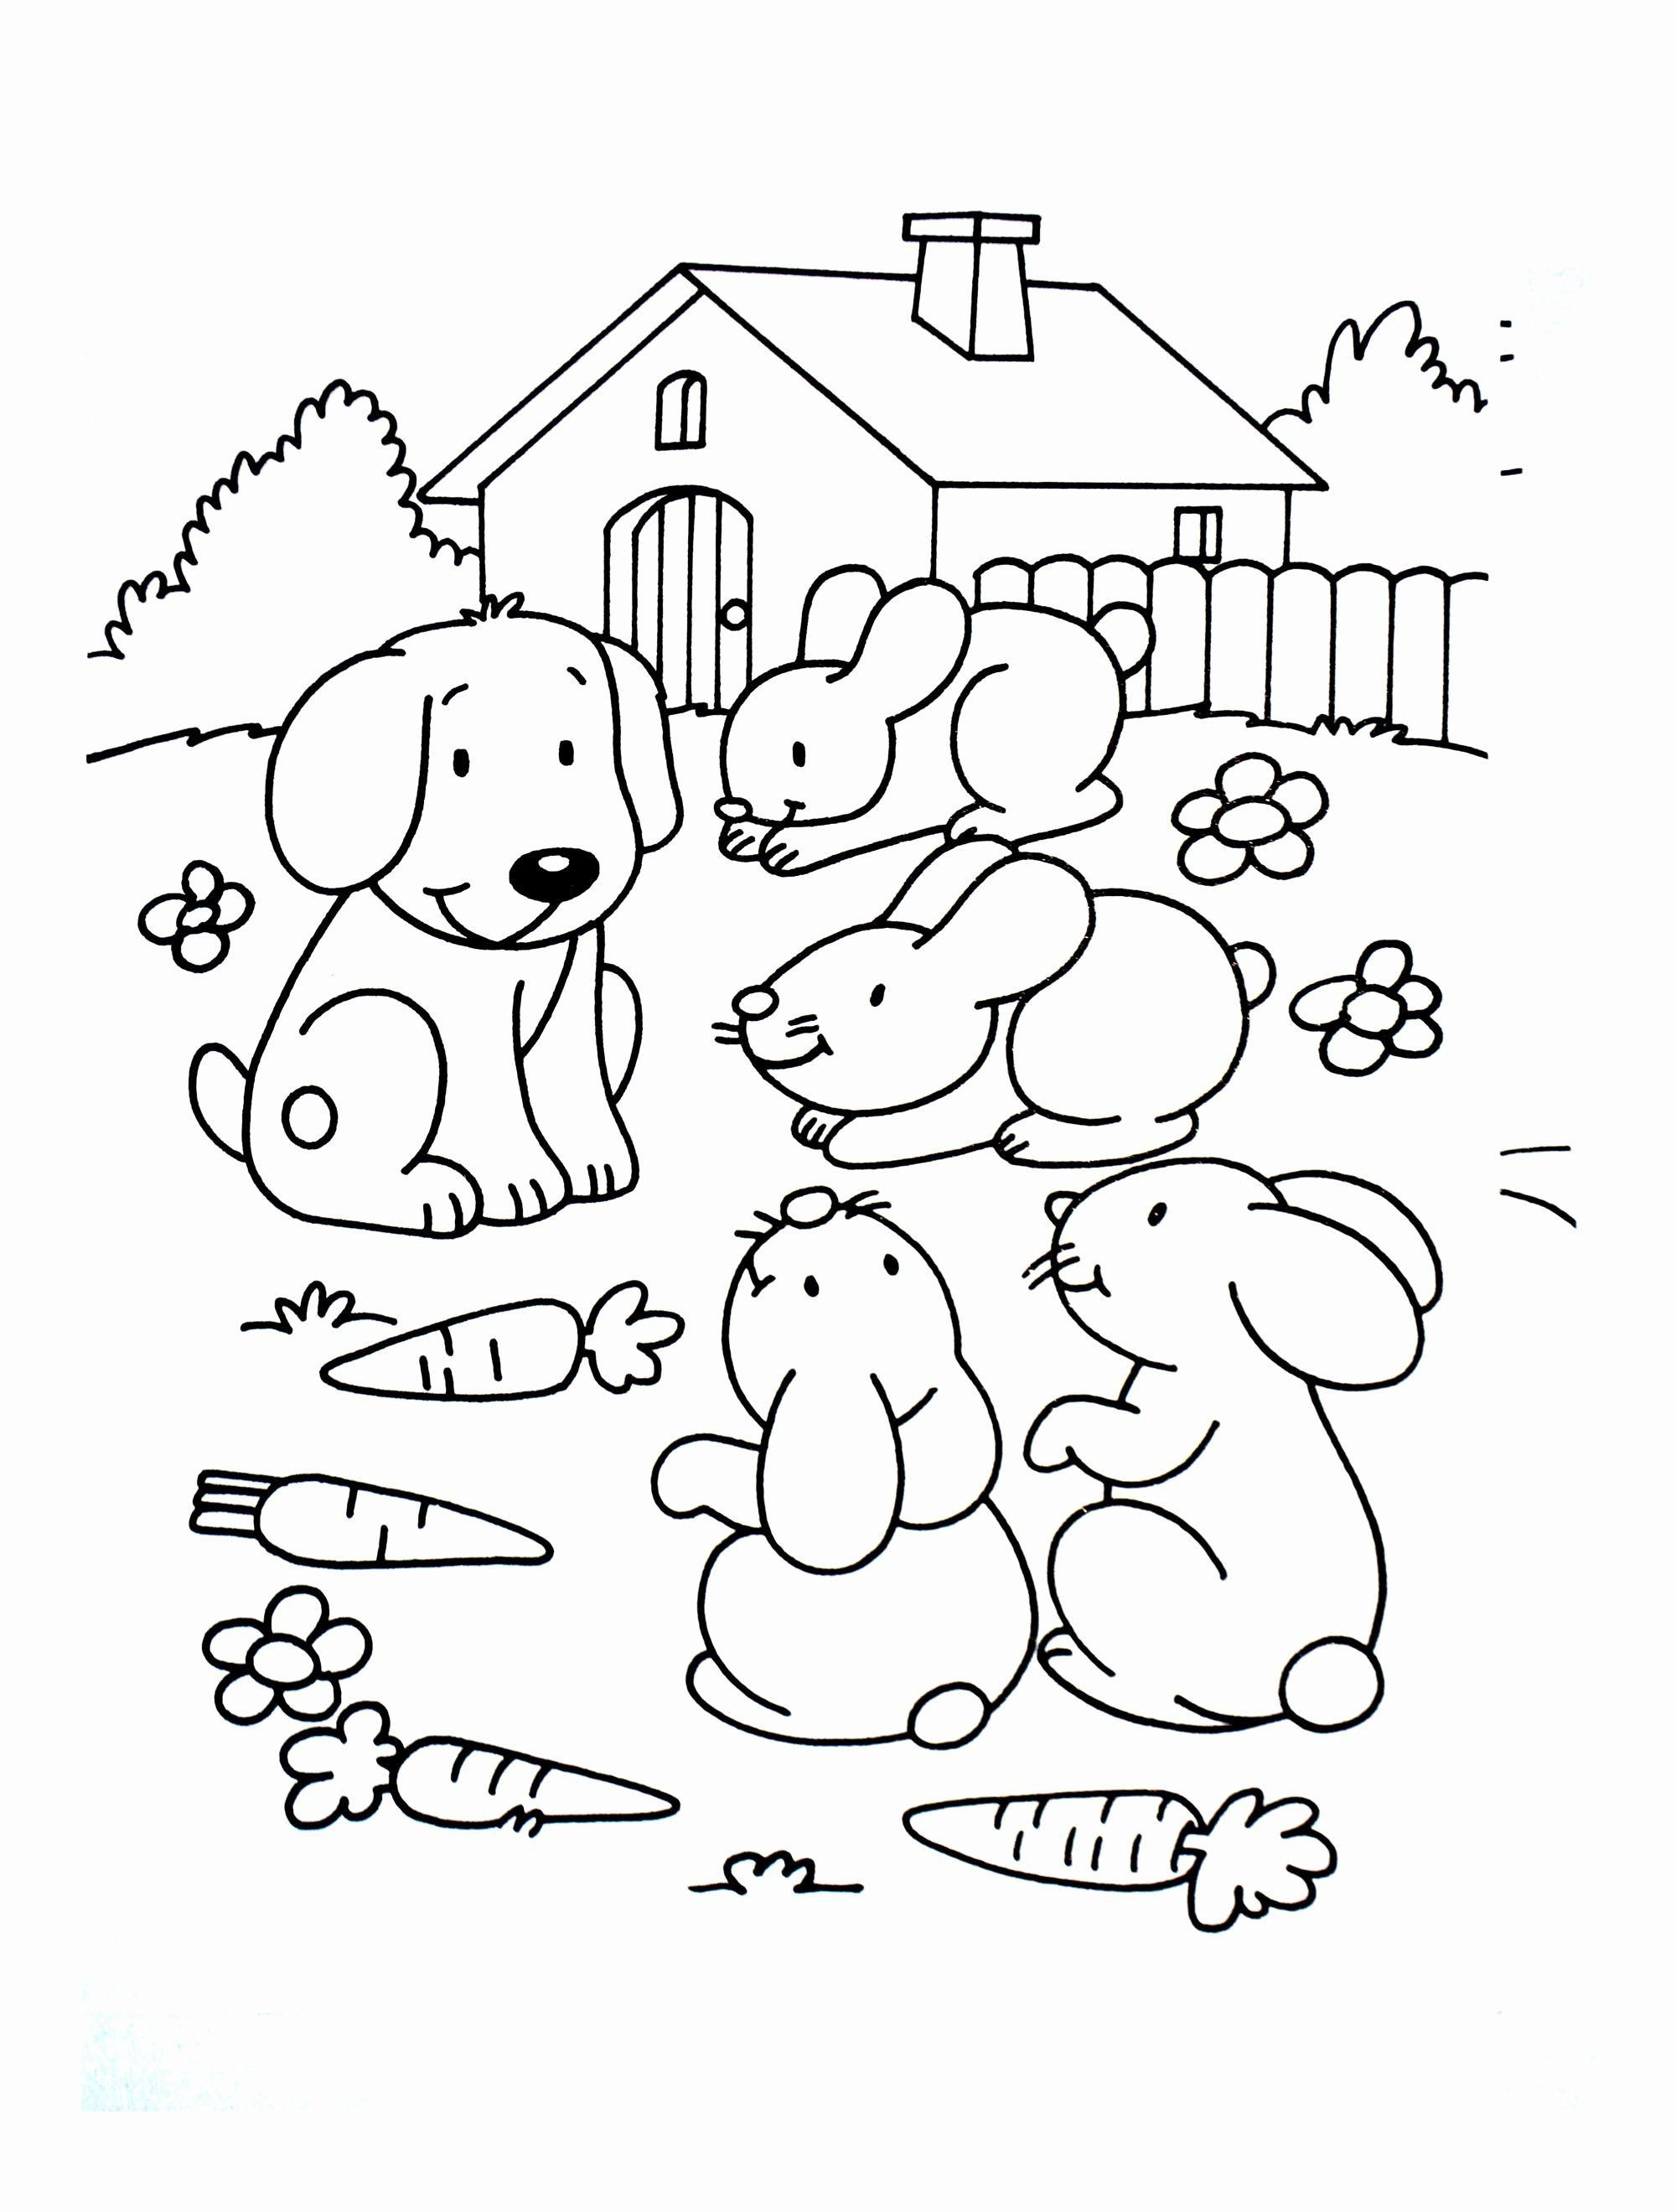 Coloring Pages House Animal New Animal Friends Coloring Pages Farm Animal Coloring Pages Animal Coloring Pages Dog Coloring Page